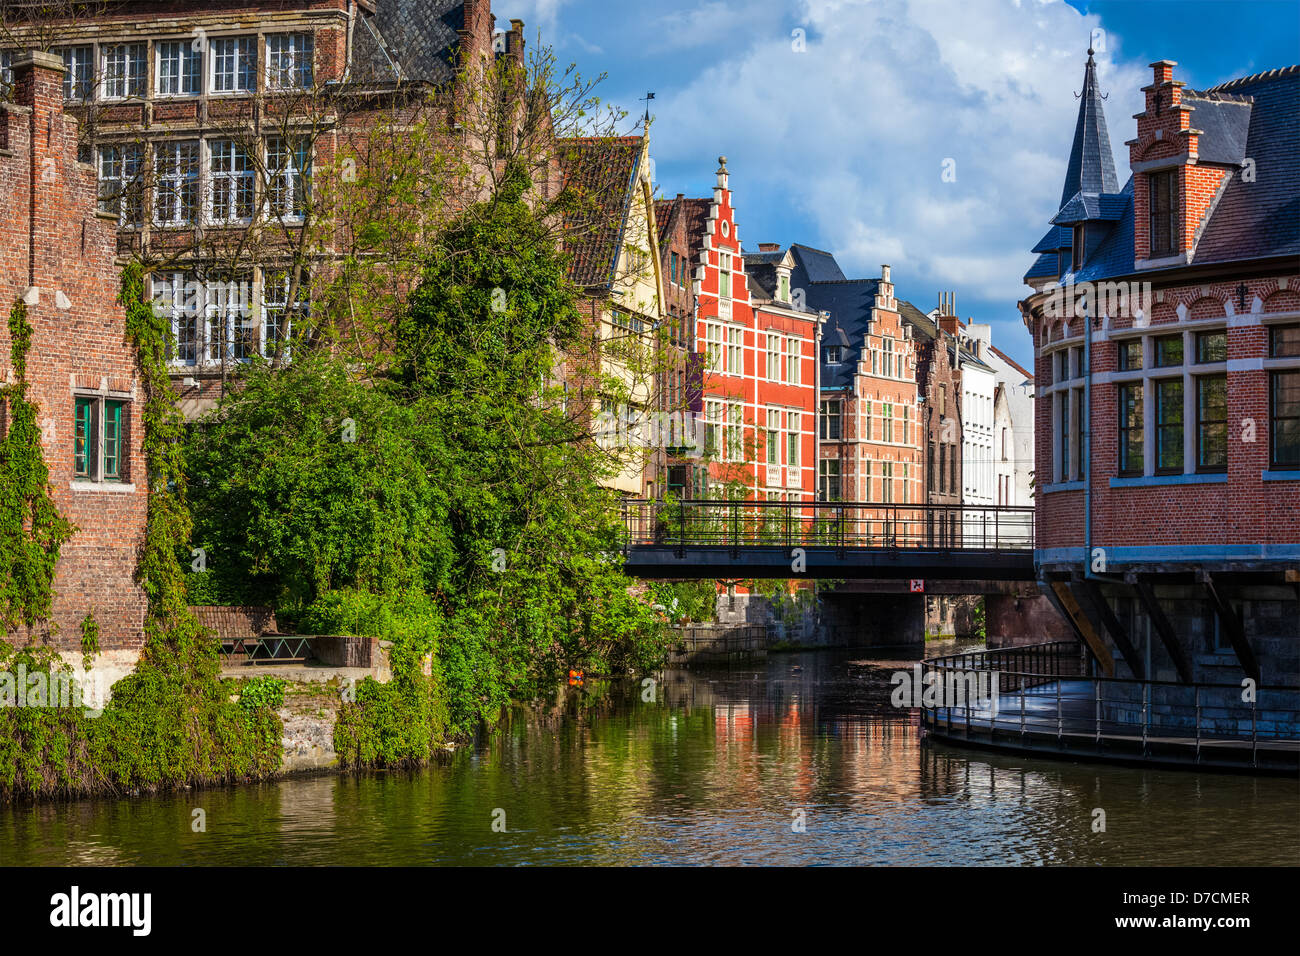 Travel Belgium medieval european city town background with canal. Ghent, Belgium - Stock Image